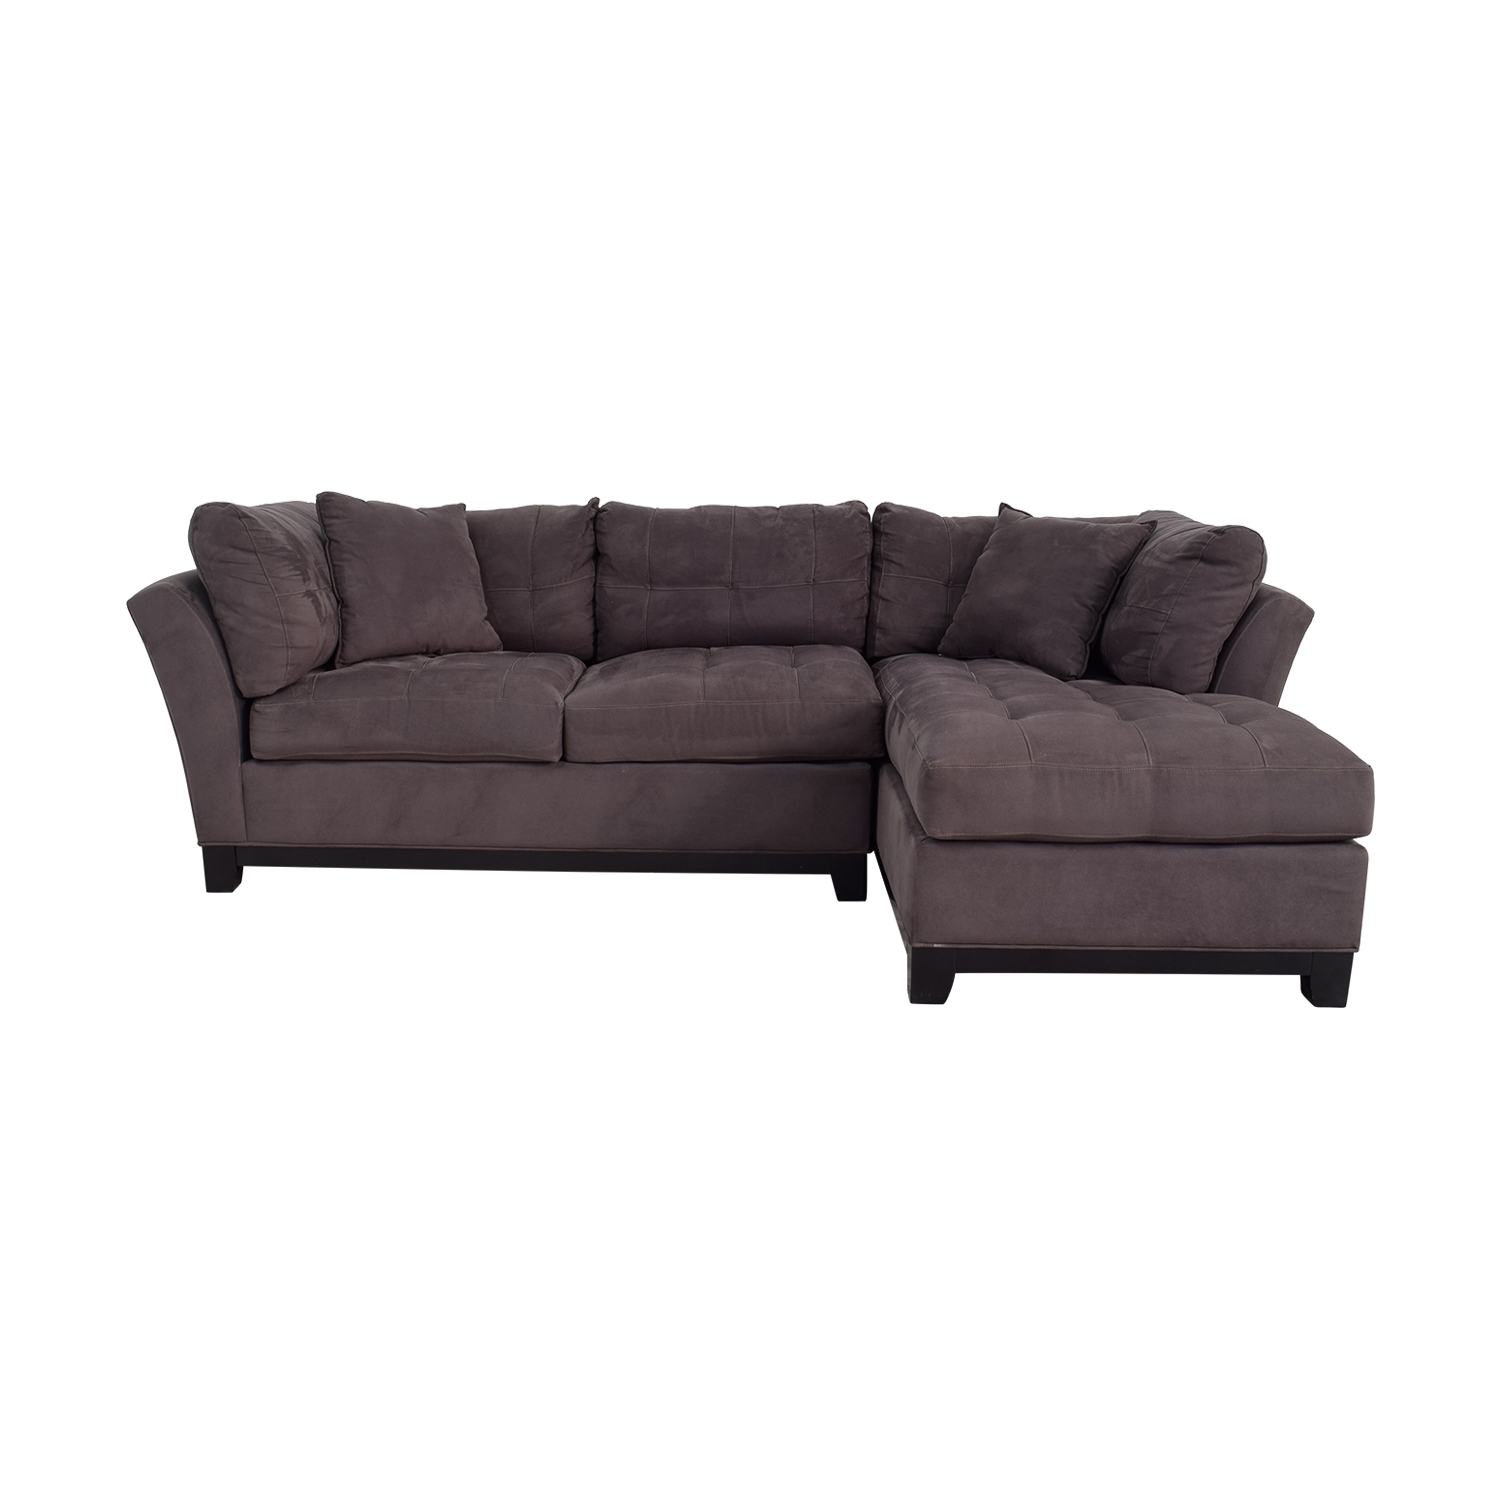 [%64% Off – Raymour & Flanigan Raymour & Flanigan Cindy Crawford Within Most Recently Released Raymour And Flanigan Sectional Sofas|Raymour And Flanigan Sectional Sofas Throughout 2017 64% Off – Raymour & Flanigan Raymour & Flanigan Cindy Crawford|Popular Raymour And Flanigan Sectional Sofas In 64% Off – Raymour & Flanigan Raymour & Flanigan Cindy Crawford|Well Liked 64% Off – Raymour & Flanigan Raymour & Flanigan Cindy Crawford Intended For Raymour And Flanigan Sectional Sofas%] (View 13 of 15)